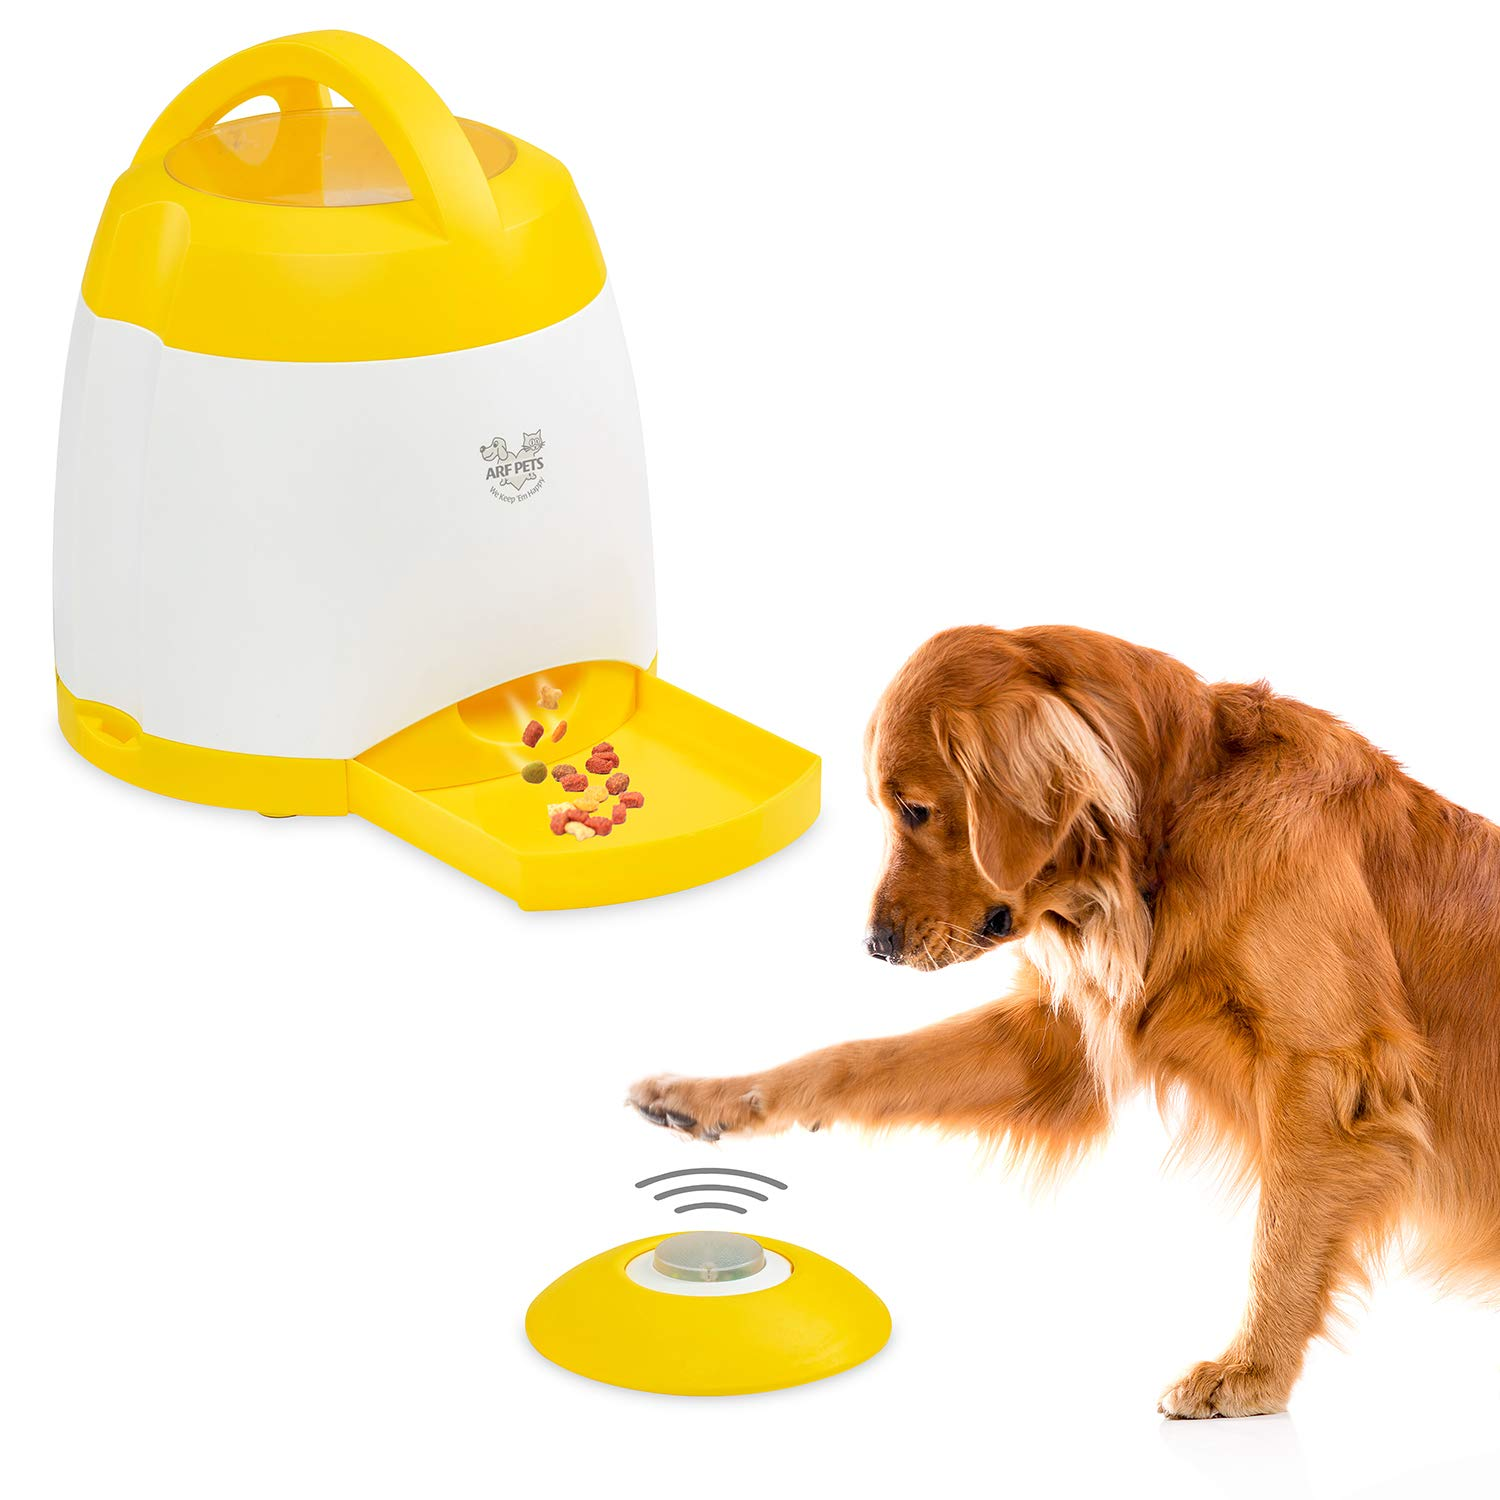 Arf Pets Dog Treat Dispenser - Dog Puzzle Memory Training Activity Toy - Treat While Train, Promotes Exercise by Rewarding Your Pet, Cat, Improves Memory & Positive Training for A Healthier & Happier by Arf Pets